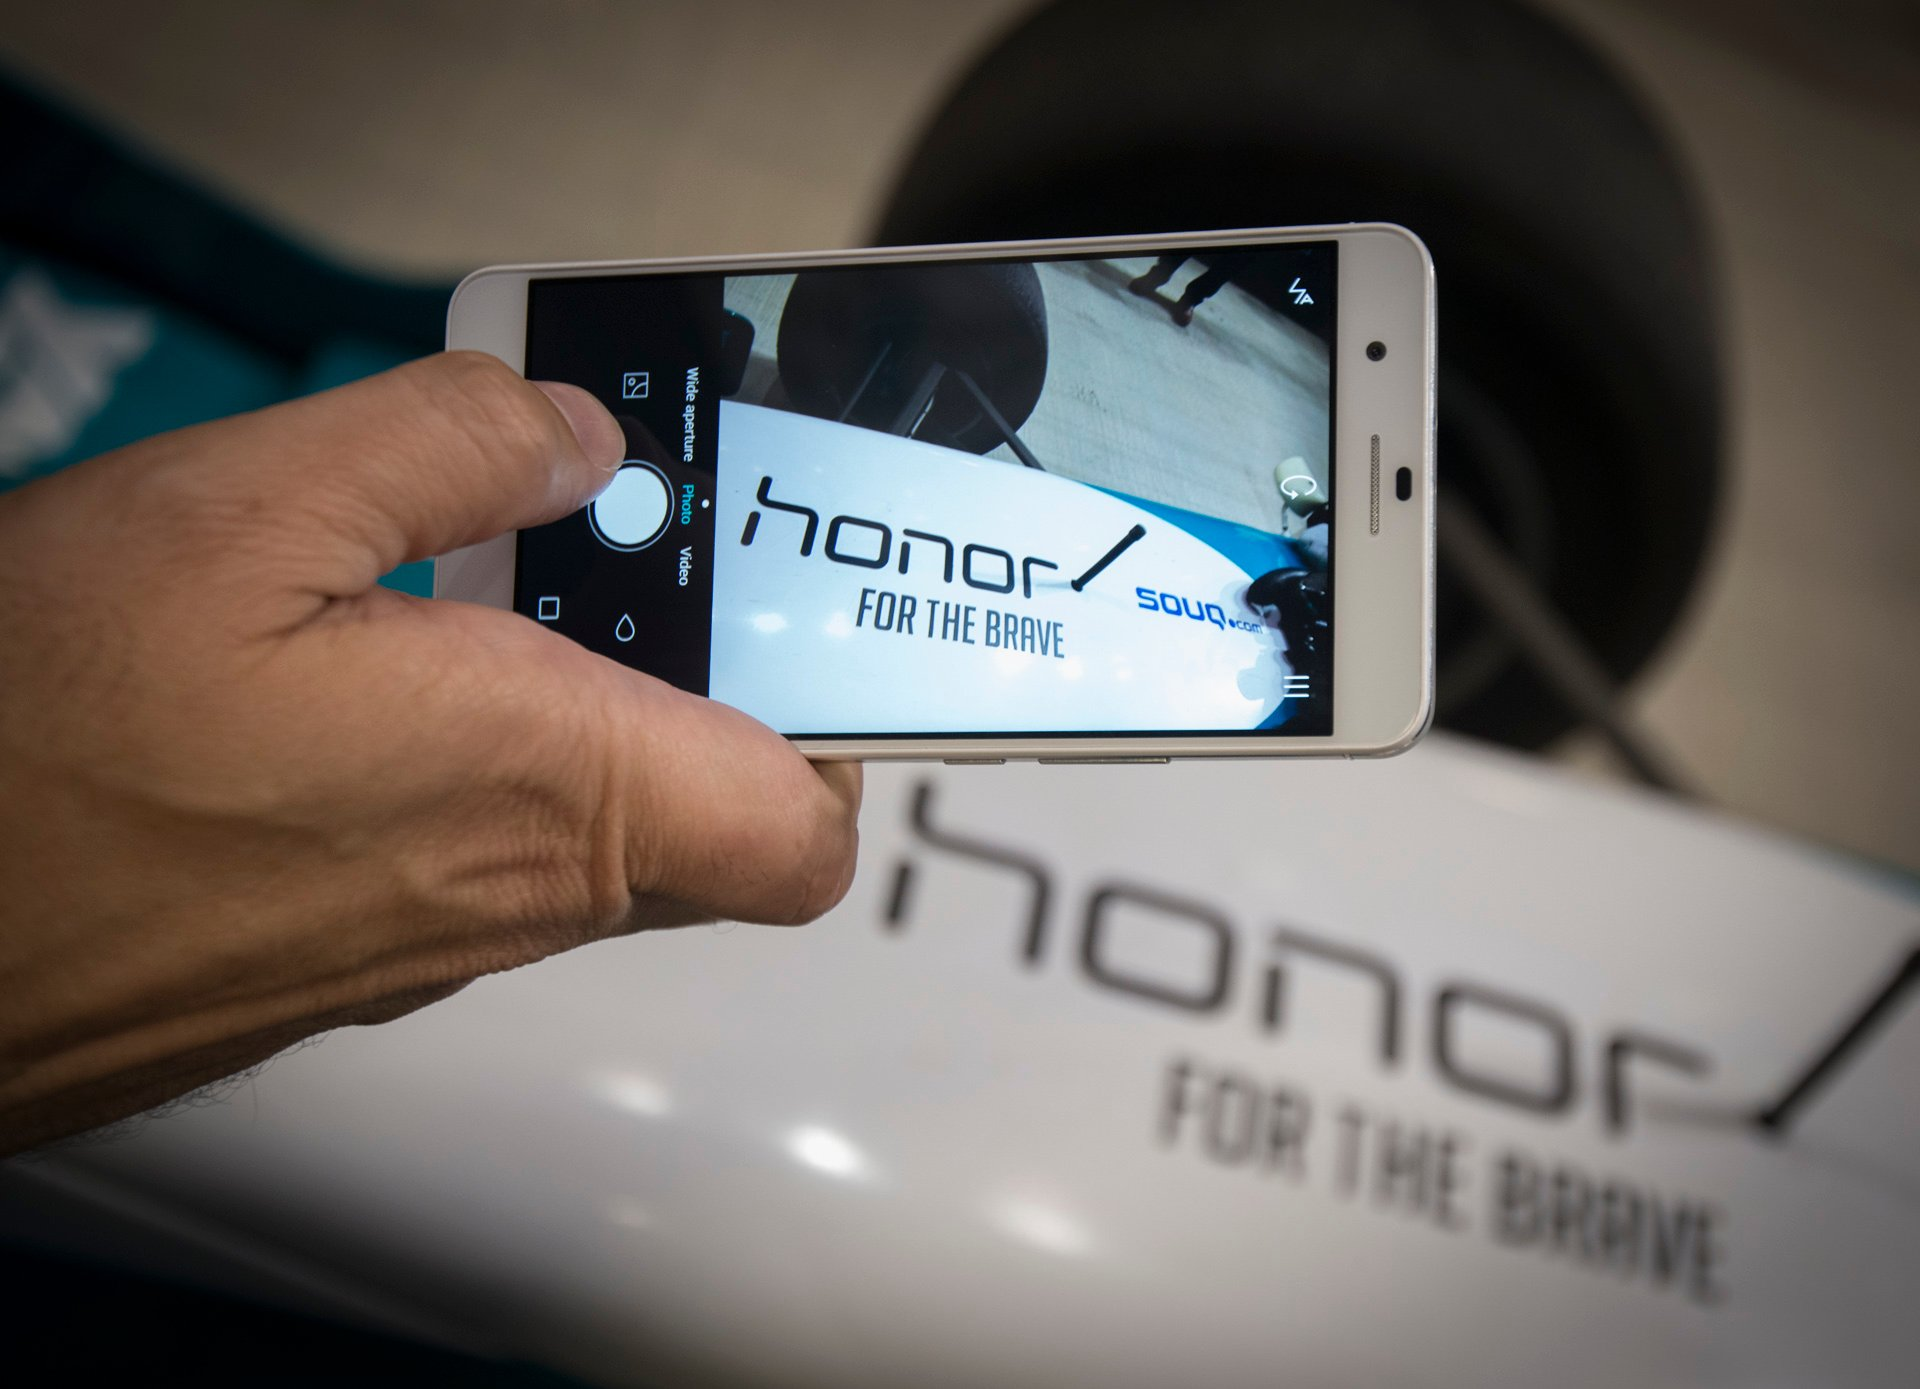 Huawei Launches Honor Six Plus Smartphone In Middle East